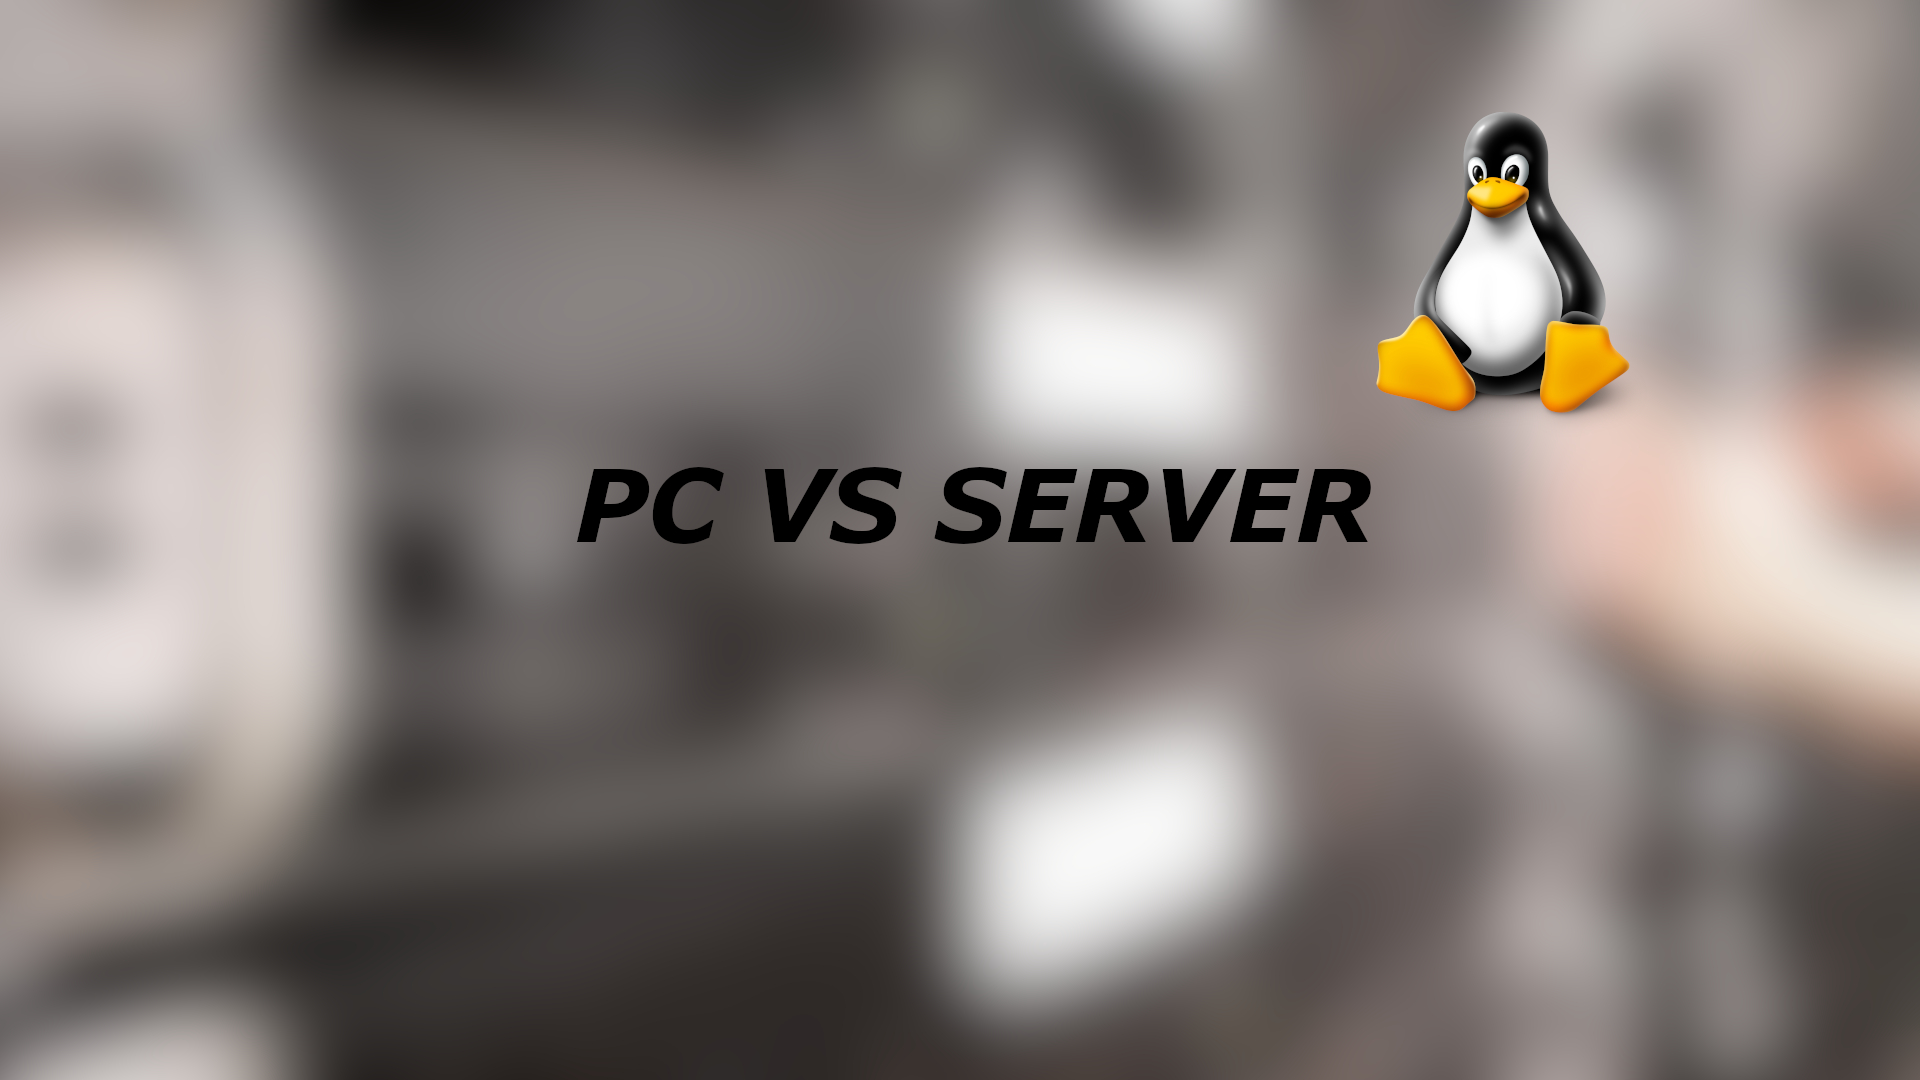 Linux Desktop vs Linux Server